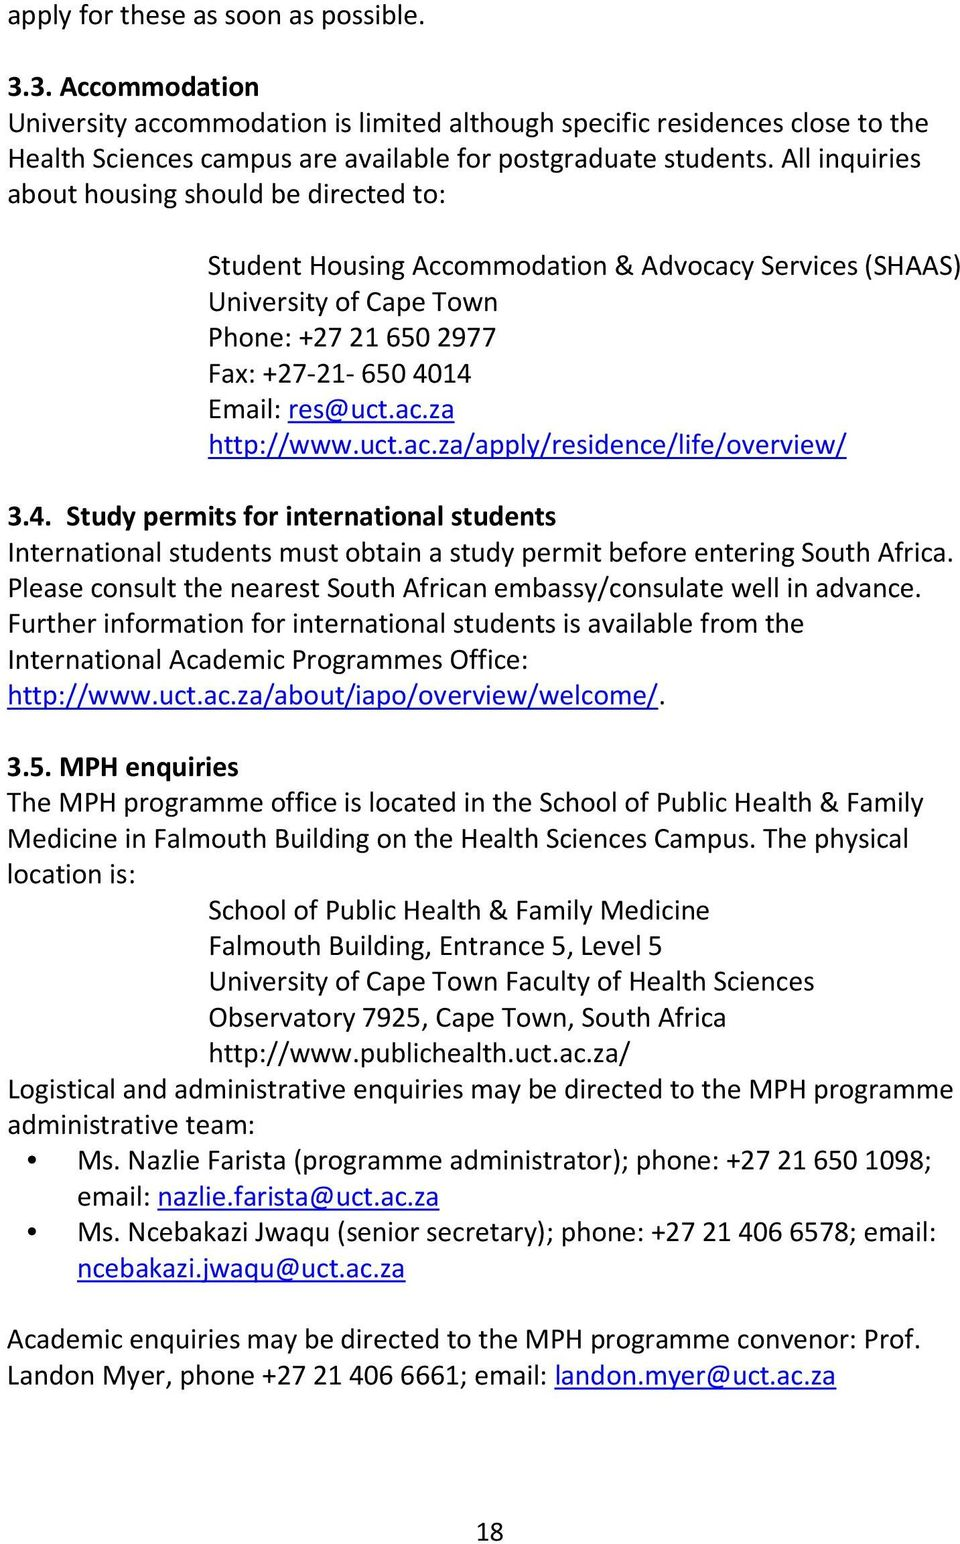 uct.ac.za/apply/residence/life/overview/ 3.4. Study permits for international students International students must obtain a study permit before entering South Africa.